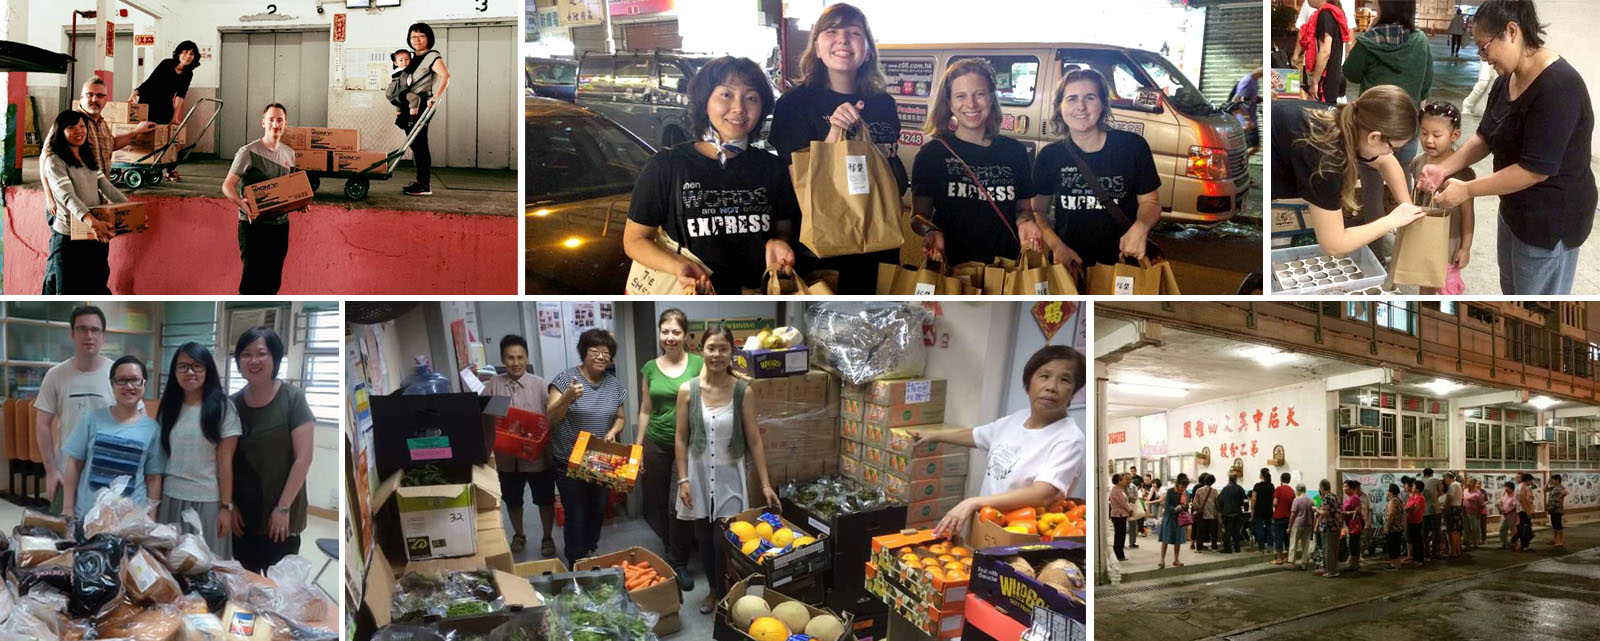 Bread Runs and Food Distributions